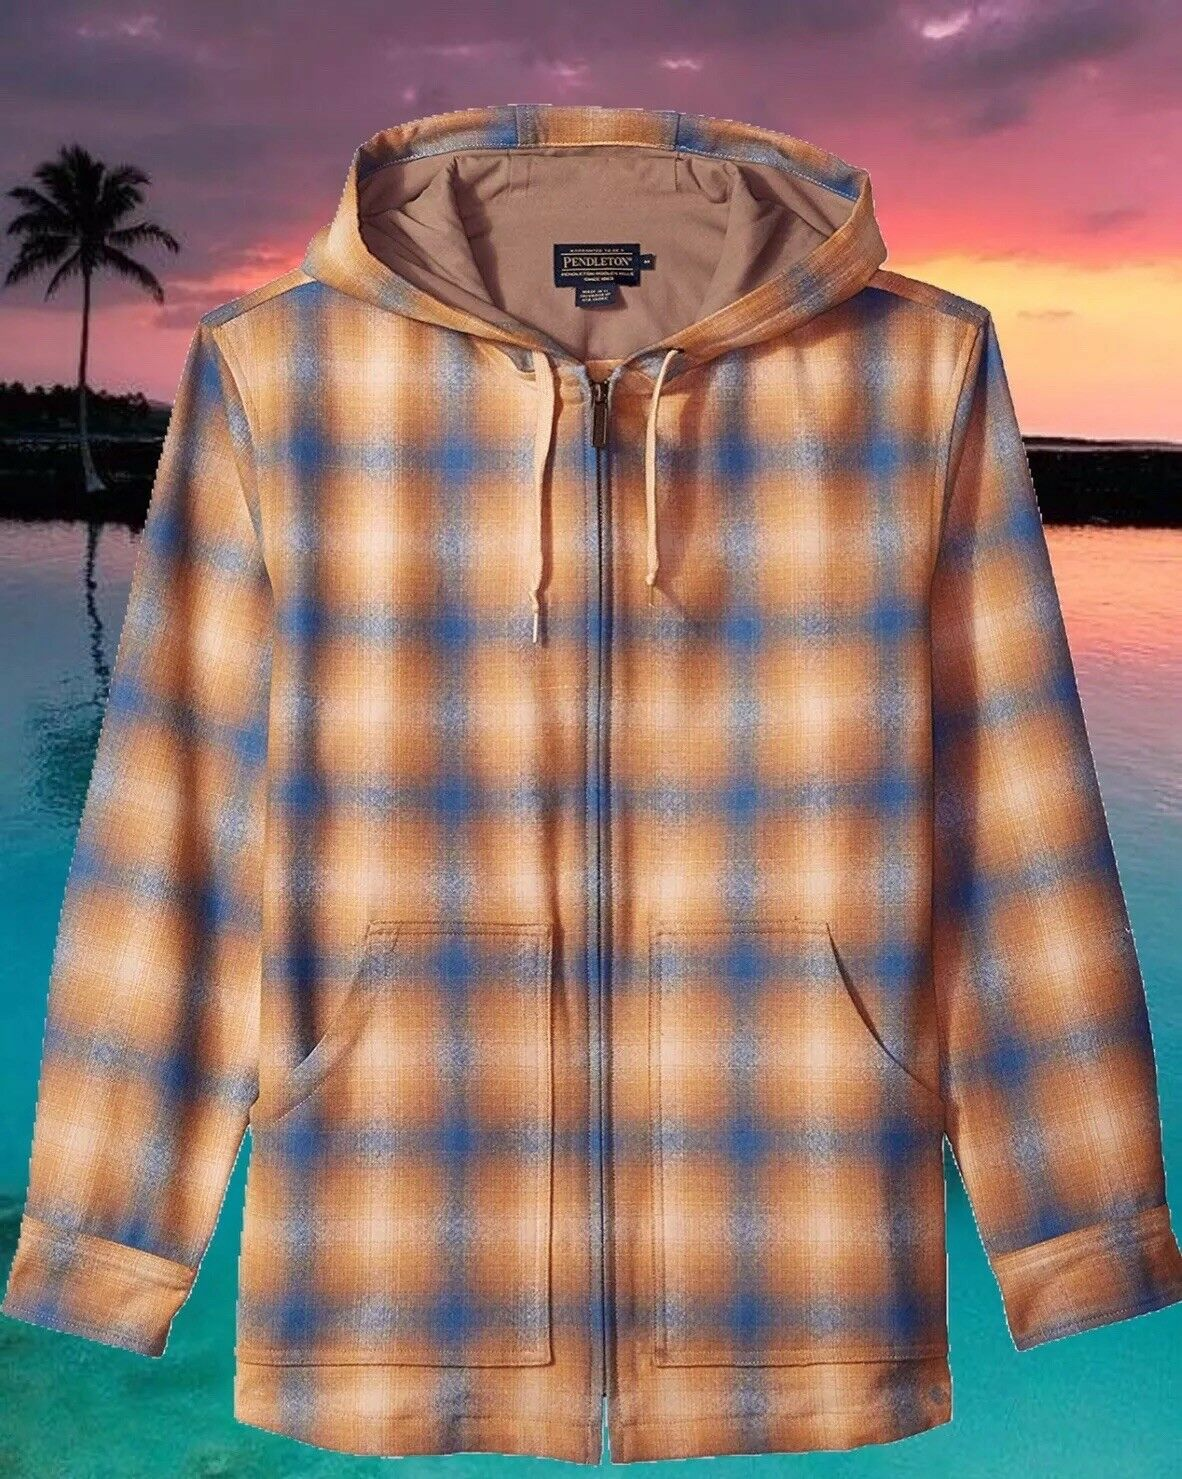 Pendleton Mens 3XL Lightweight Wool Hoodie bluee & Tan Ombre Nwt